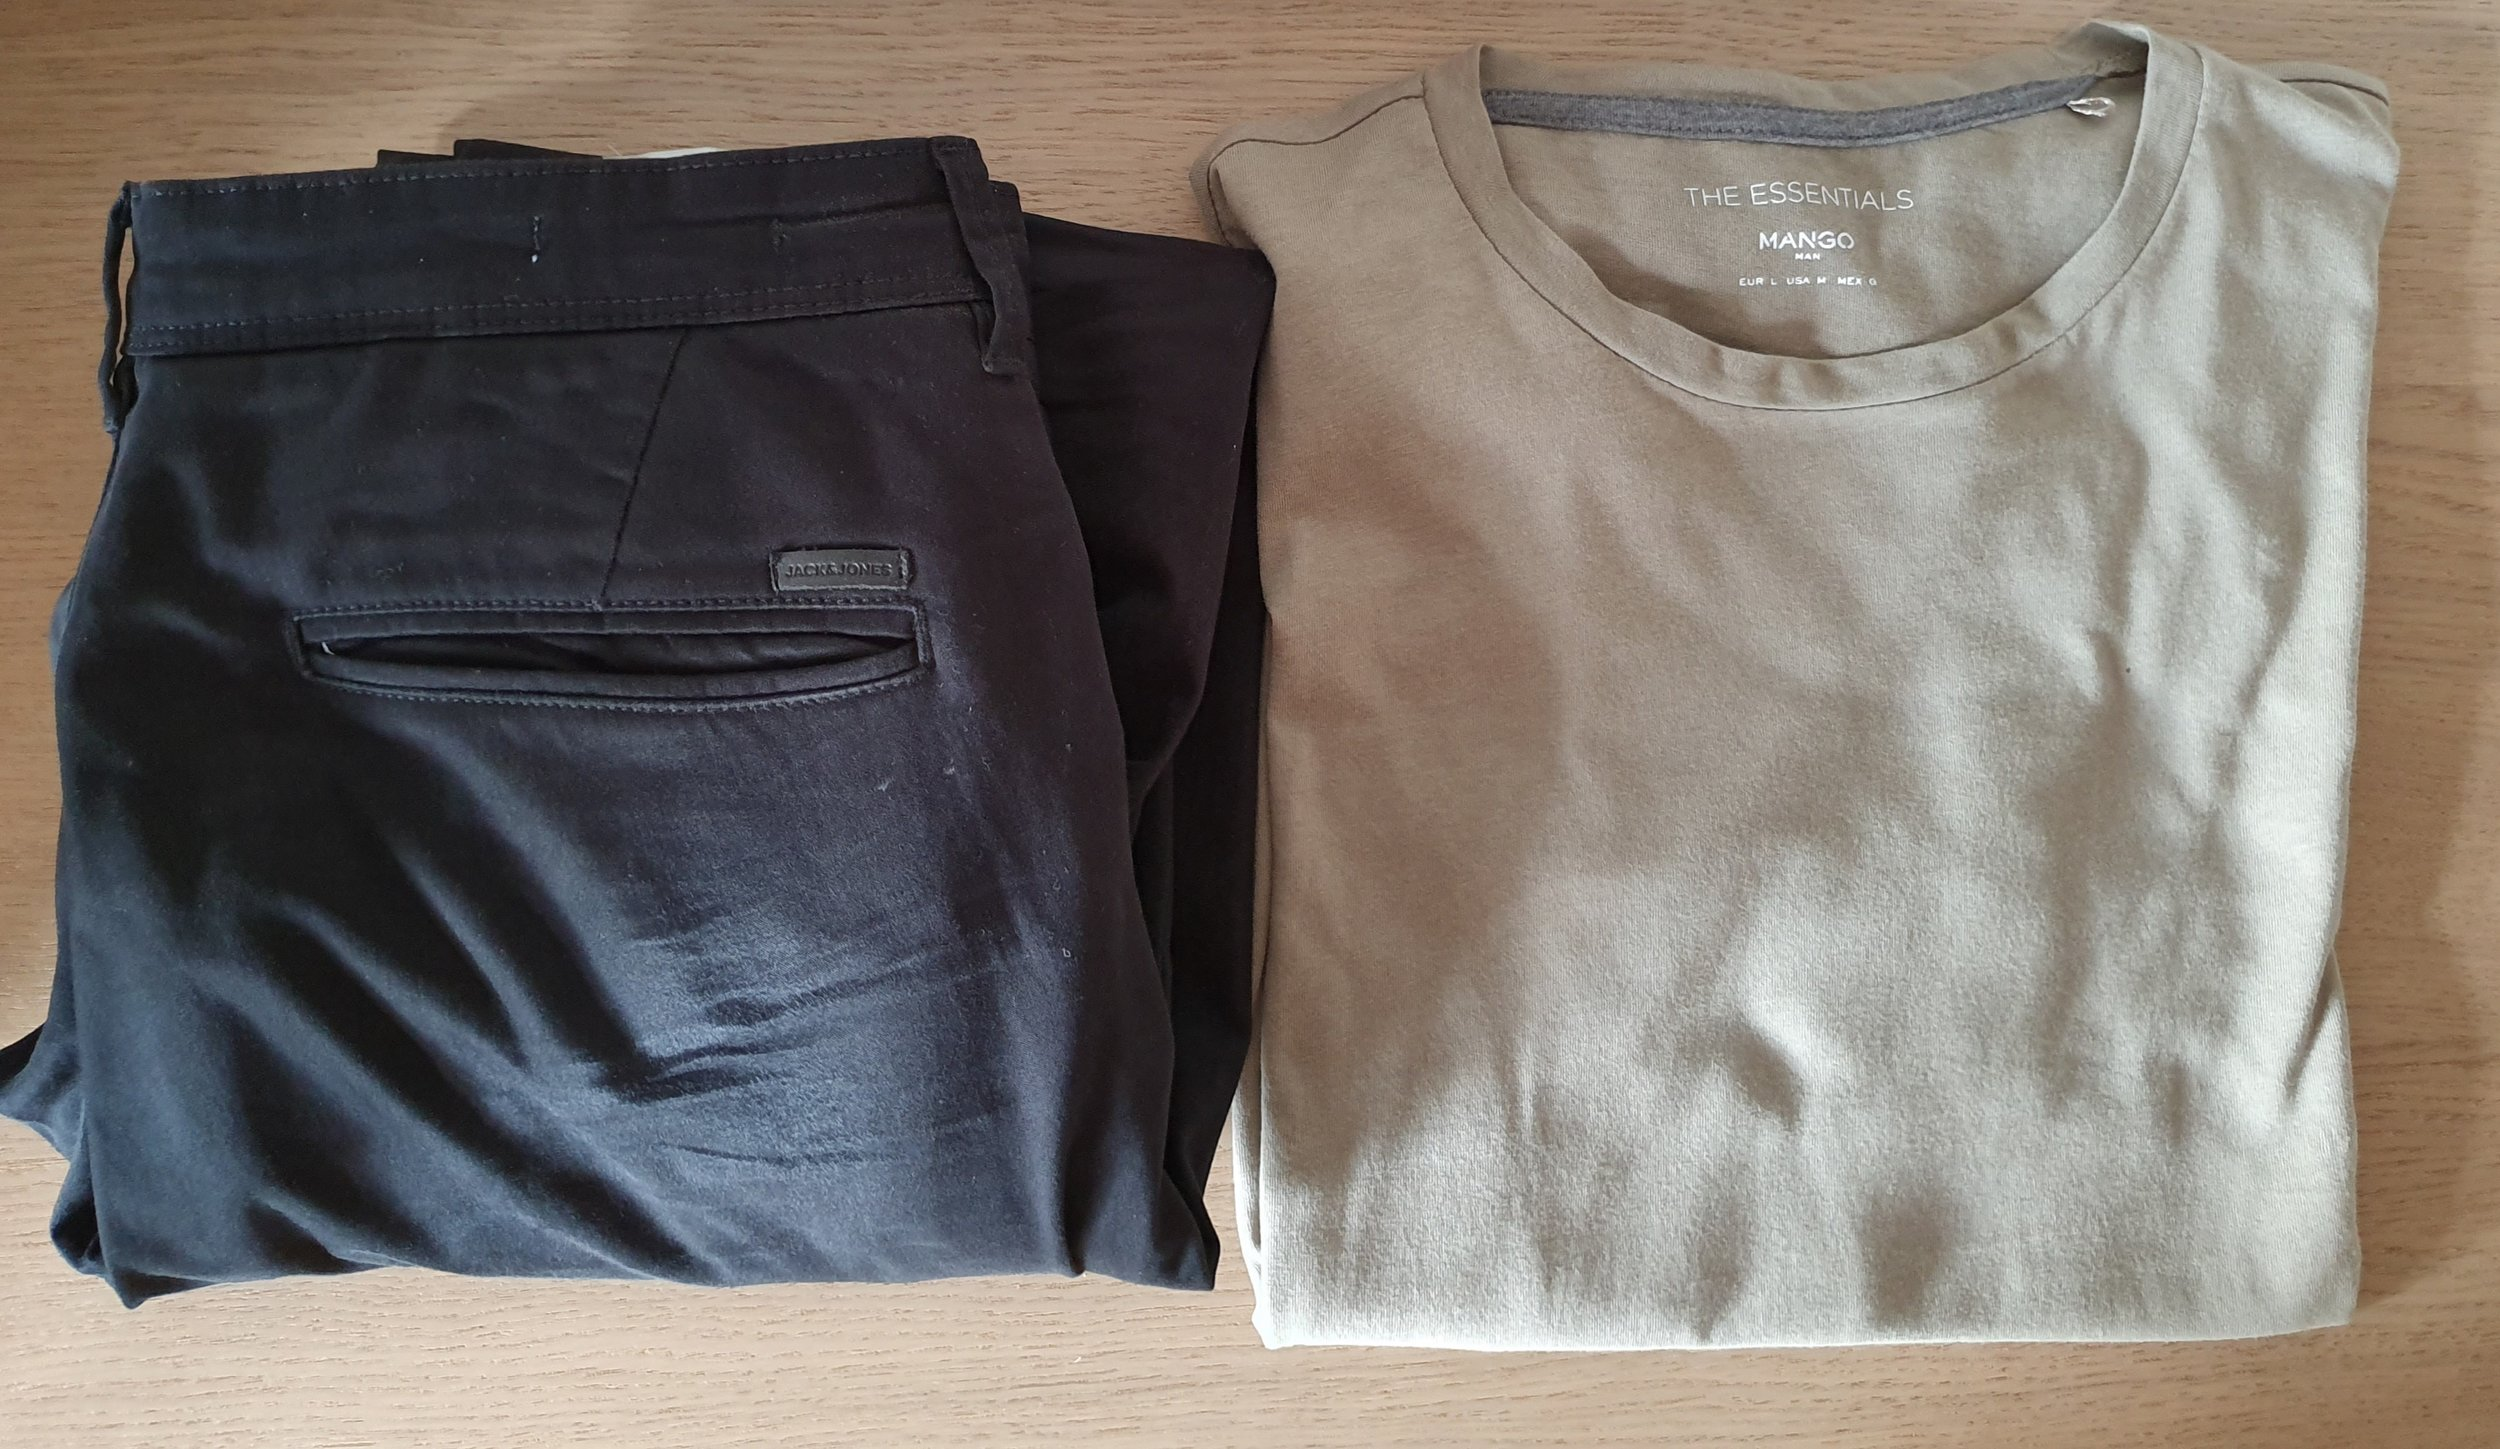 Black Chinos by Jack & Jones and Essentials T-Shirt Khaki by Mango